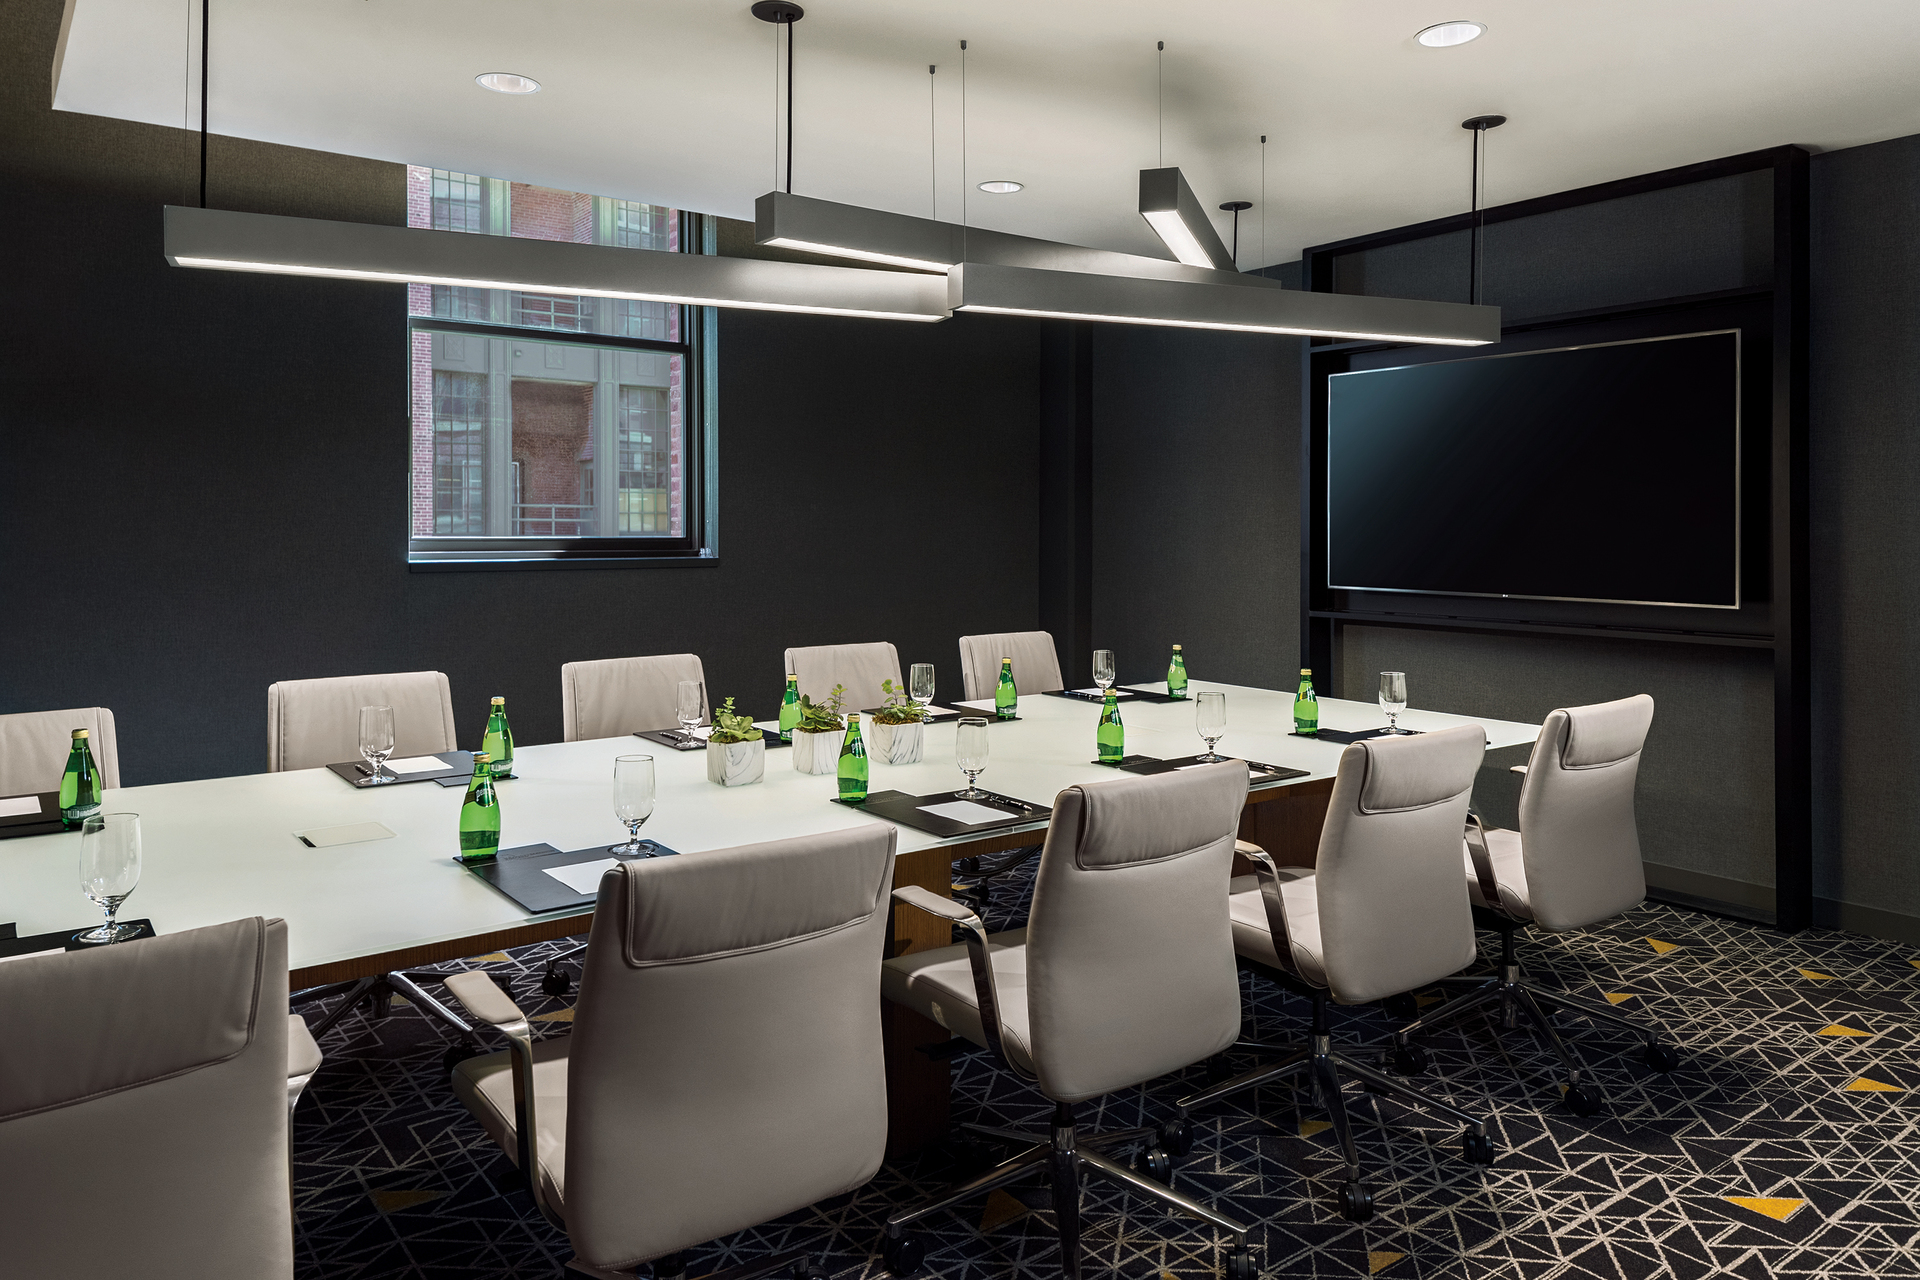 Additional custom OCL fixtures can be found punctuating hallways and meetings rooms throughout the hotel.